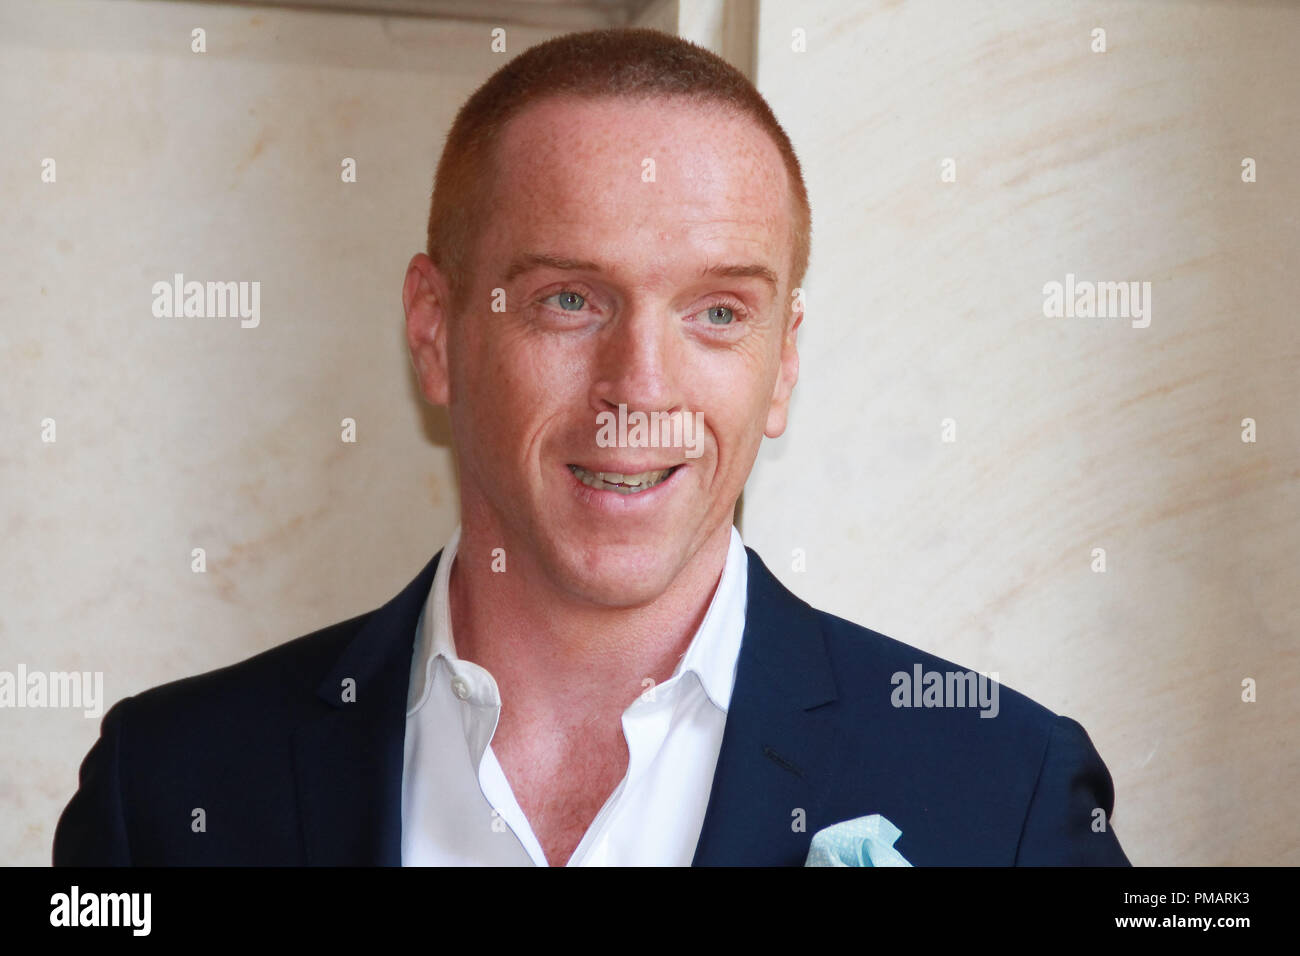 Damian Lewis 'Homeland' TV Series Portrait Session, July 29, 2013. Reproduction by American tabloids is absolutely forbidden. File Reference # 32070_024JRC  For Editorial Use Only -  All Rights Reserved - Stock Image